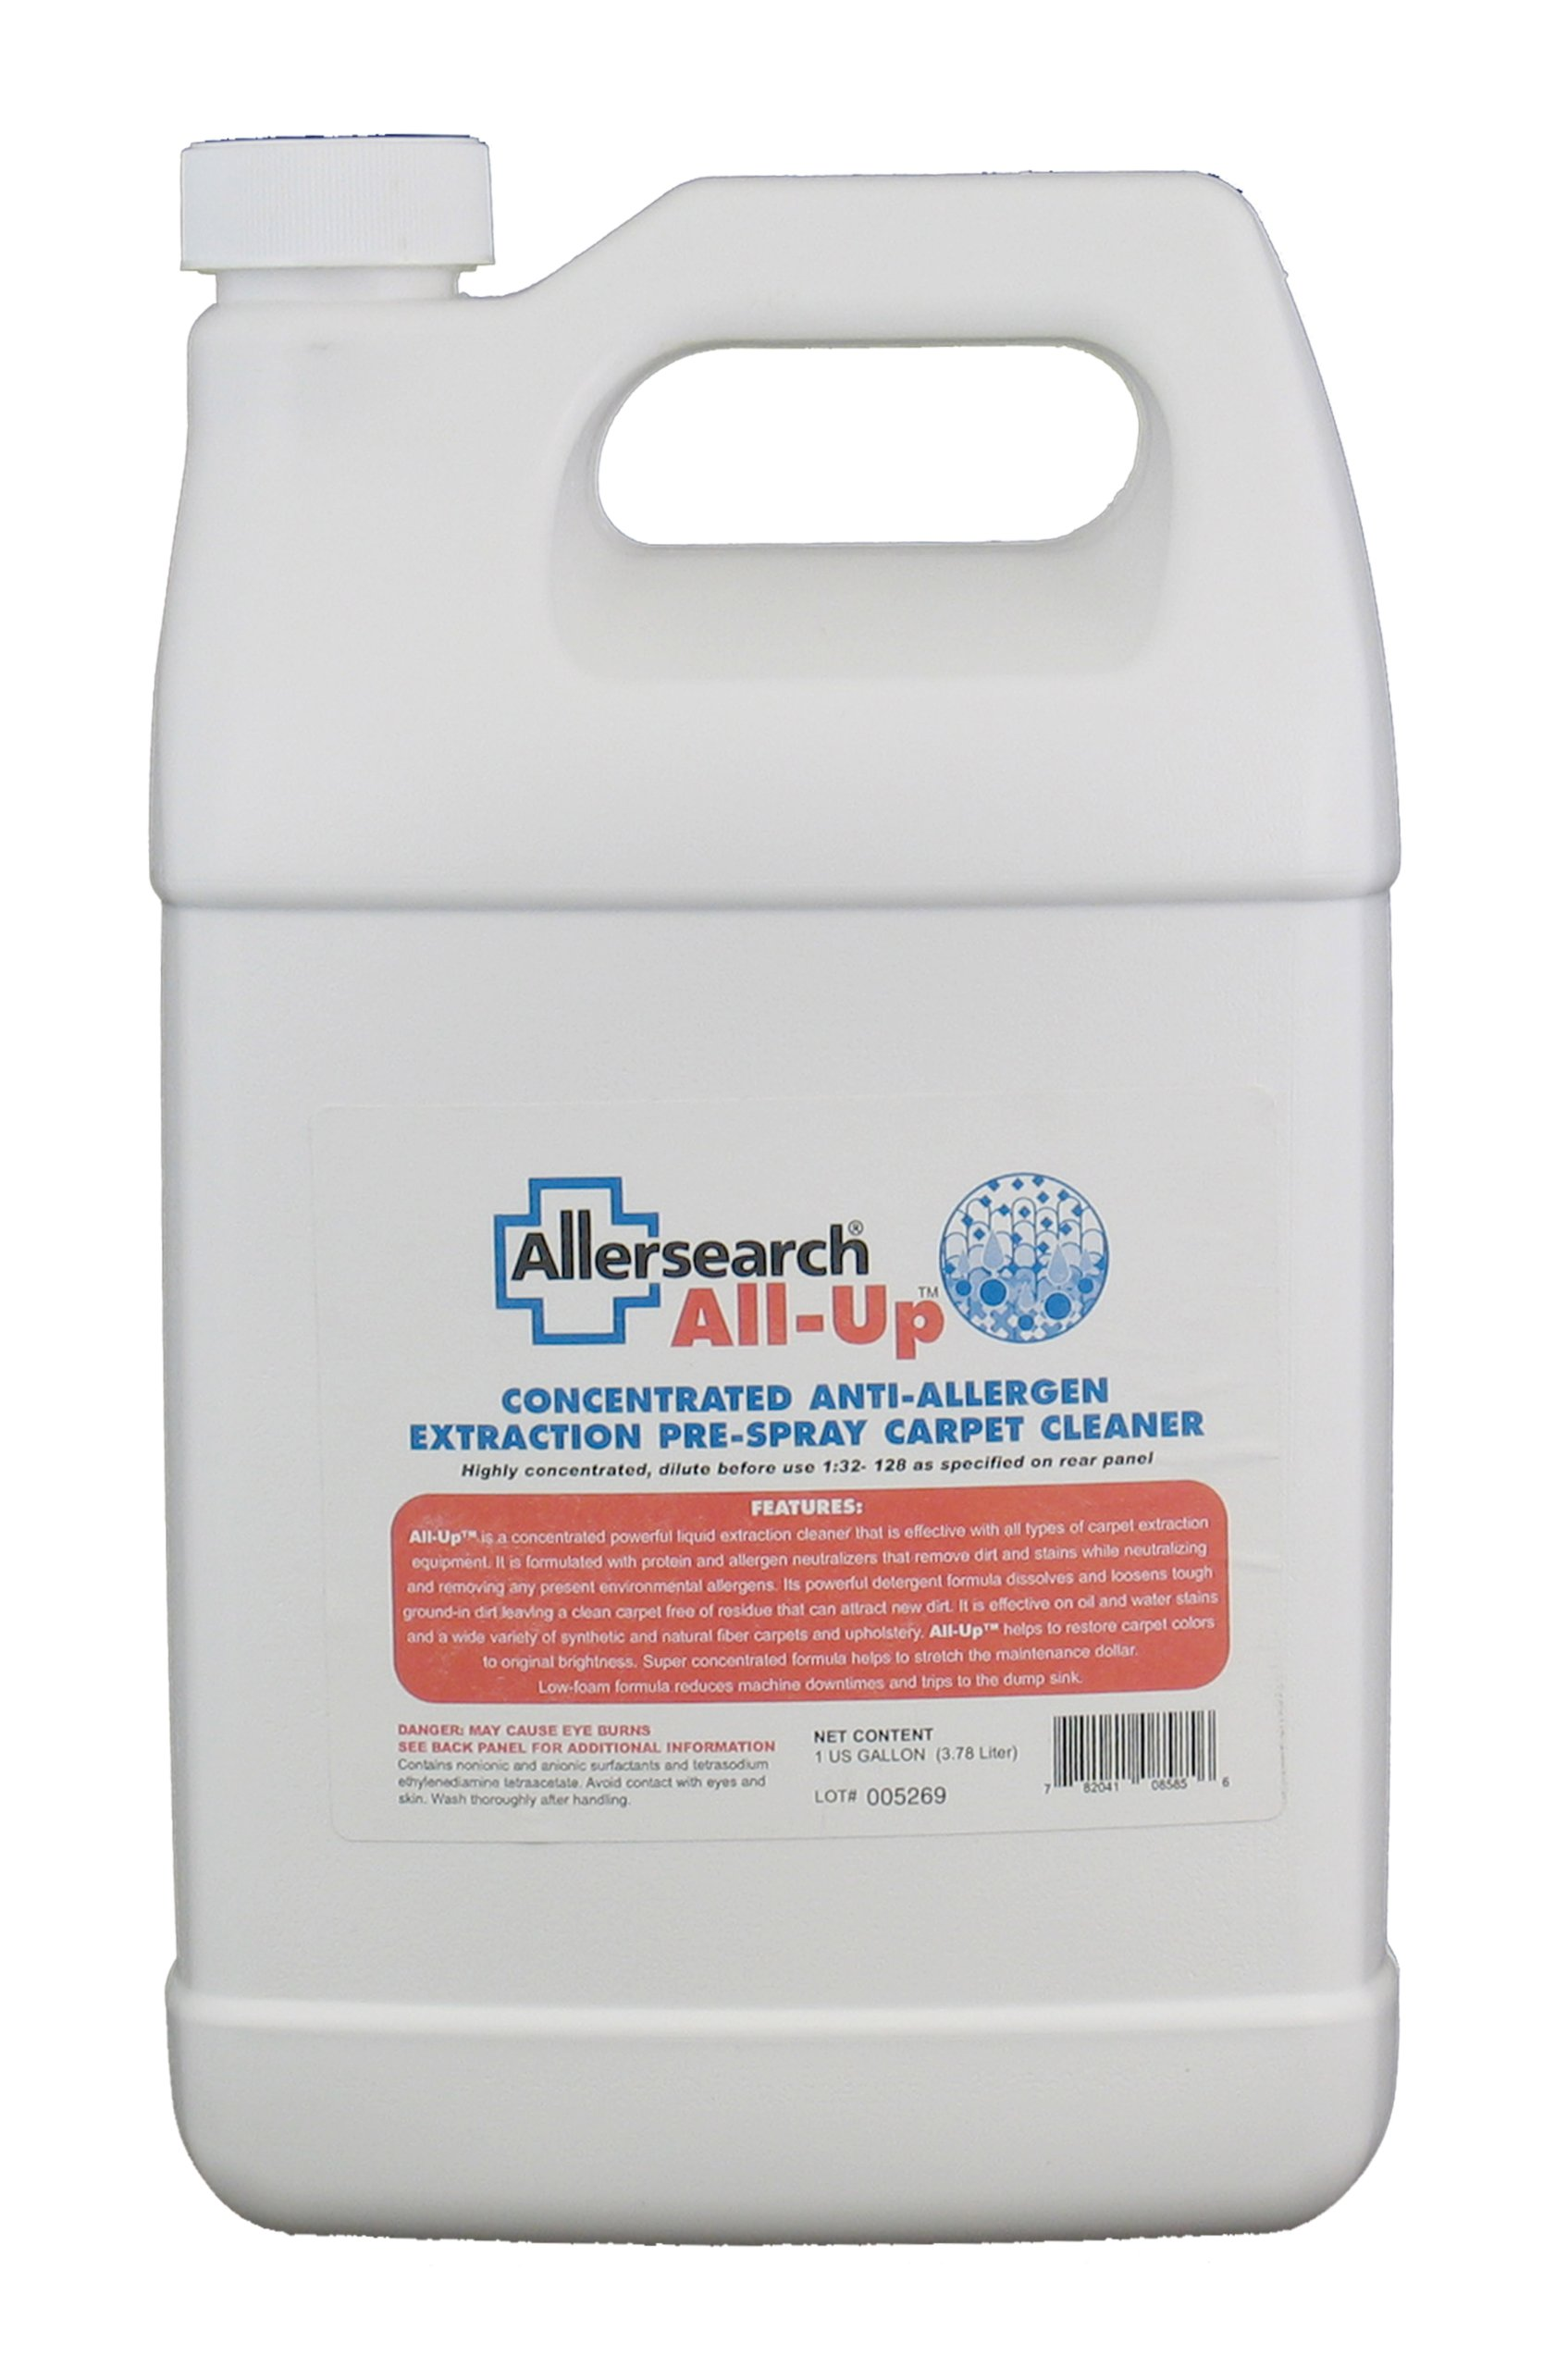 All-Up Concentrated Anti-Allergen Carpet Spot Spray 1 Gallon (128 Oz.) by Allersearch